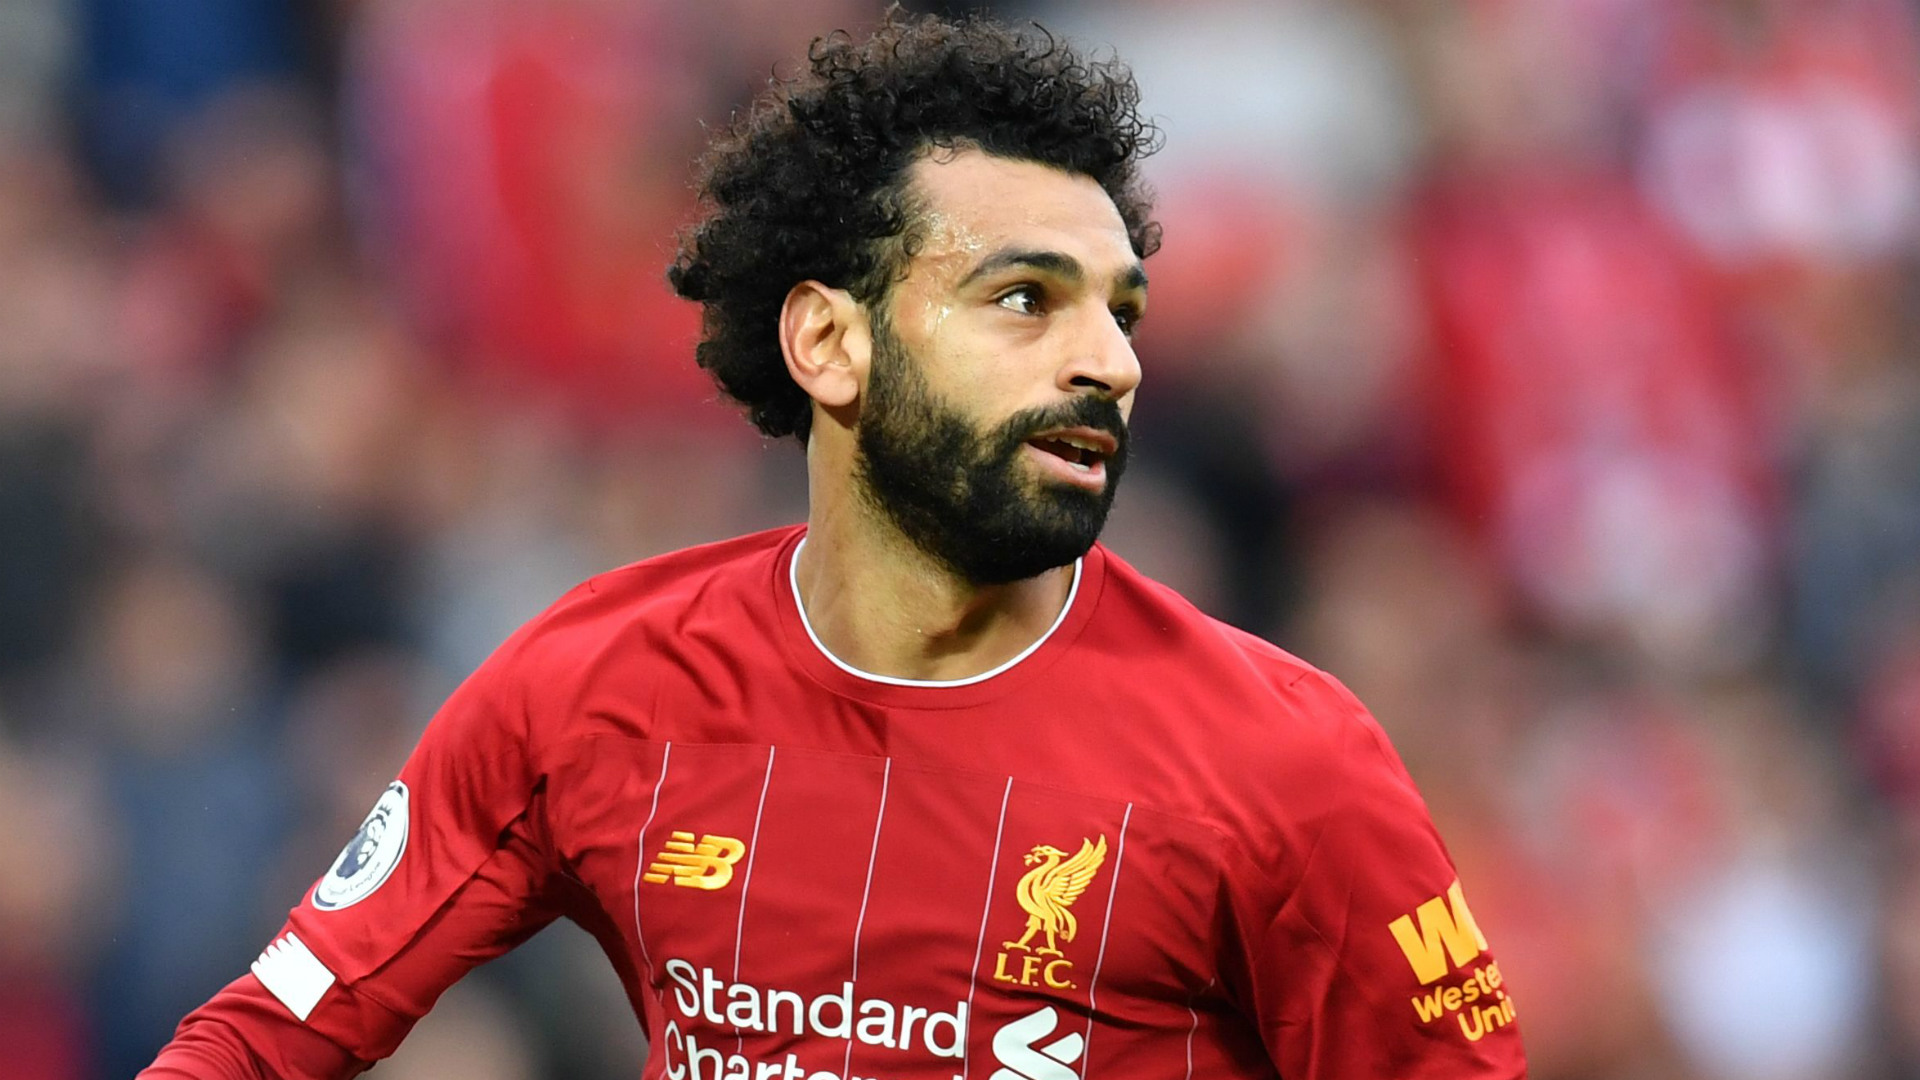 Salah doesn't care about expectations of others as Liverpool star maintains tunnel vision